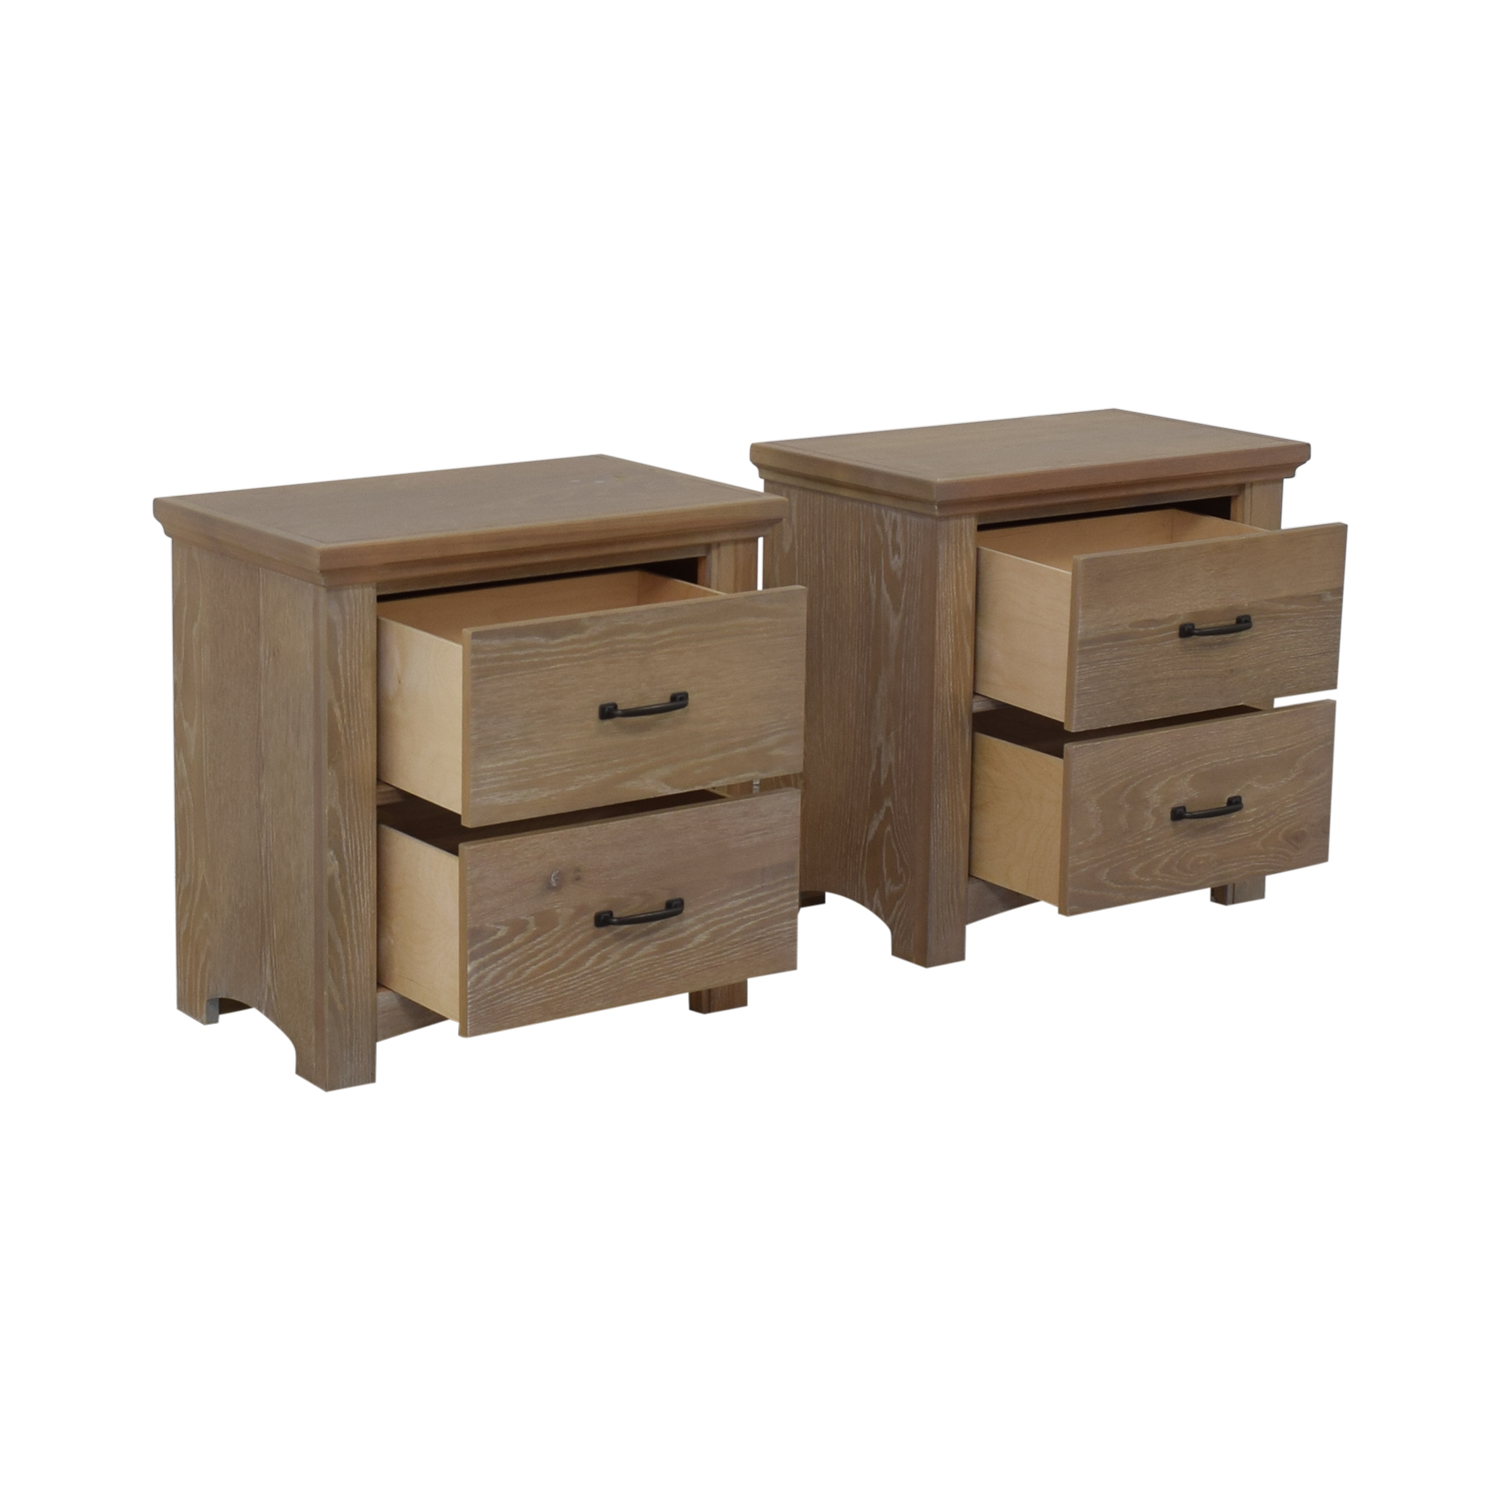 buy Vaughan-Bassett Vaughan-Basset Transitions Two Drawer Nightstands online